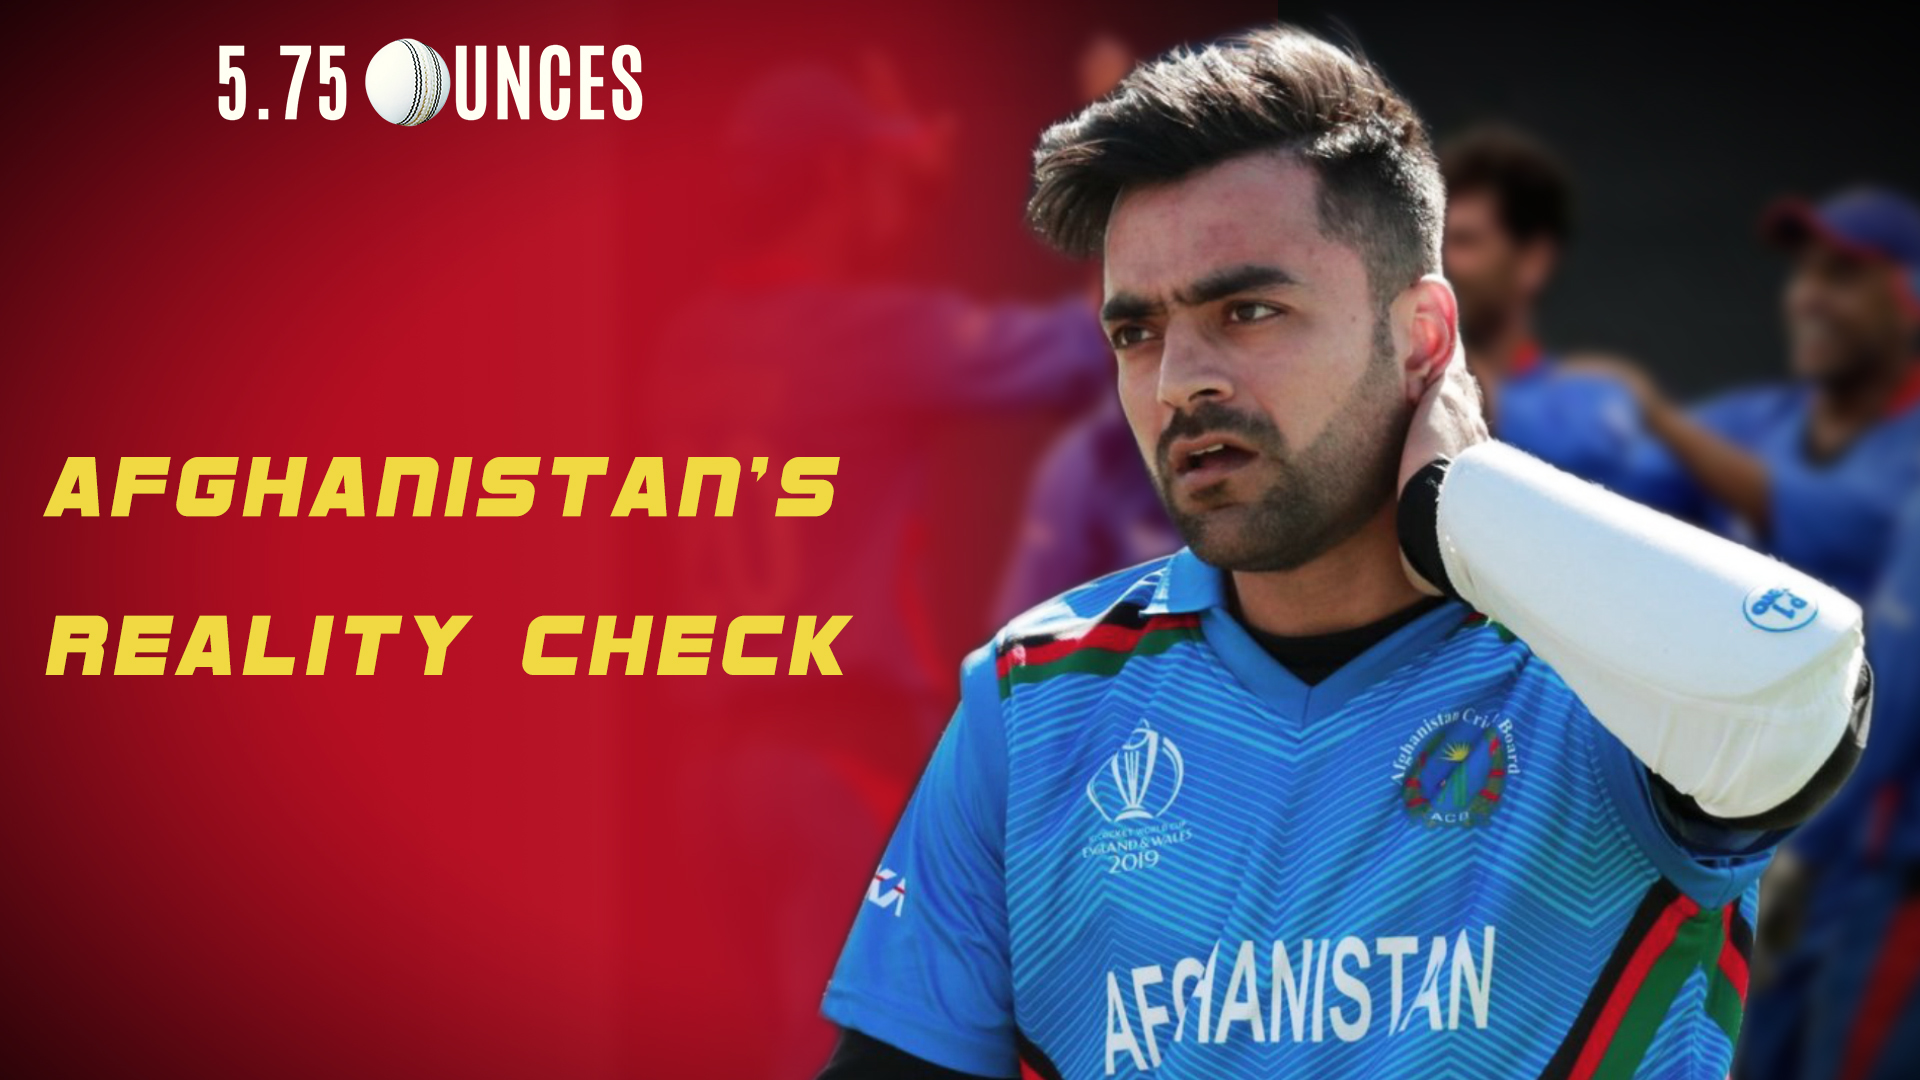 Afghanistan cricket team at the ICC World Cup 2019